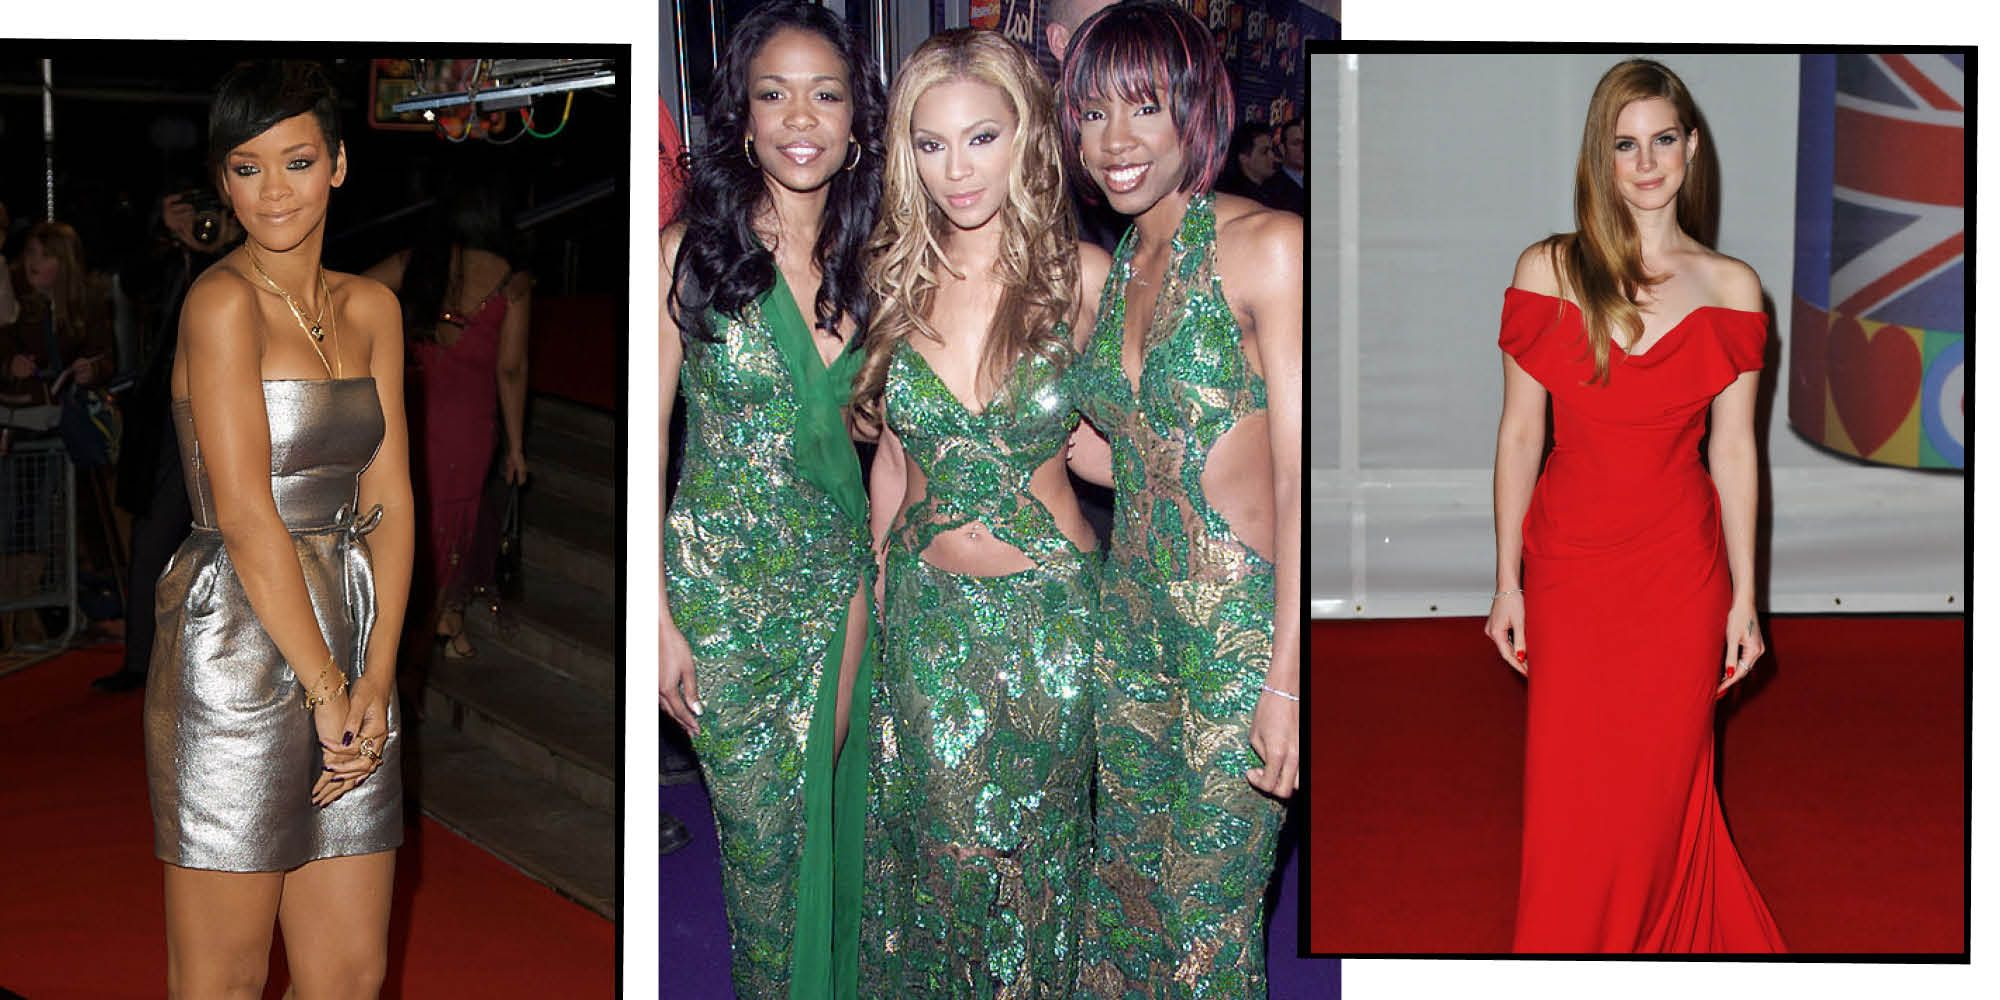 Celebrities Attending Their First BRIT Awards: From Beyoncé And Rihanna To Adele